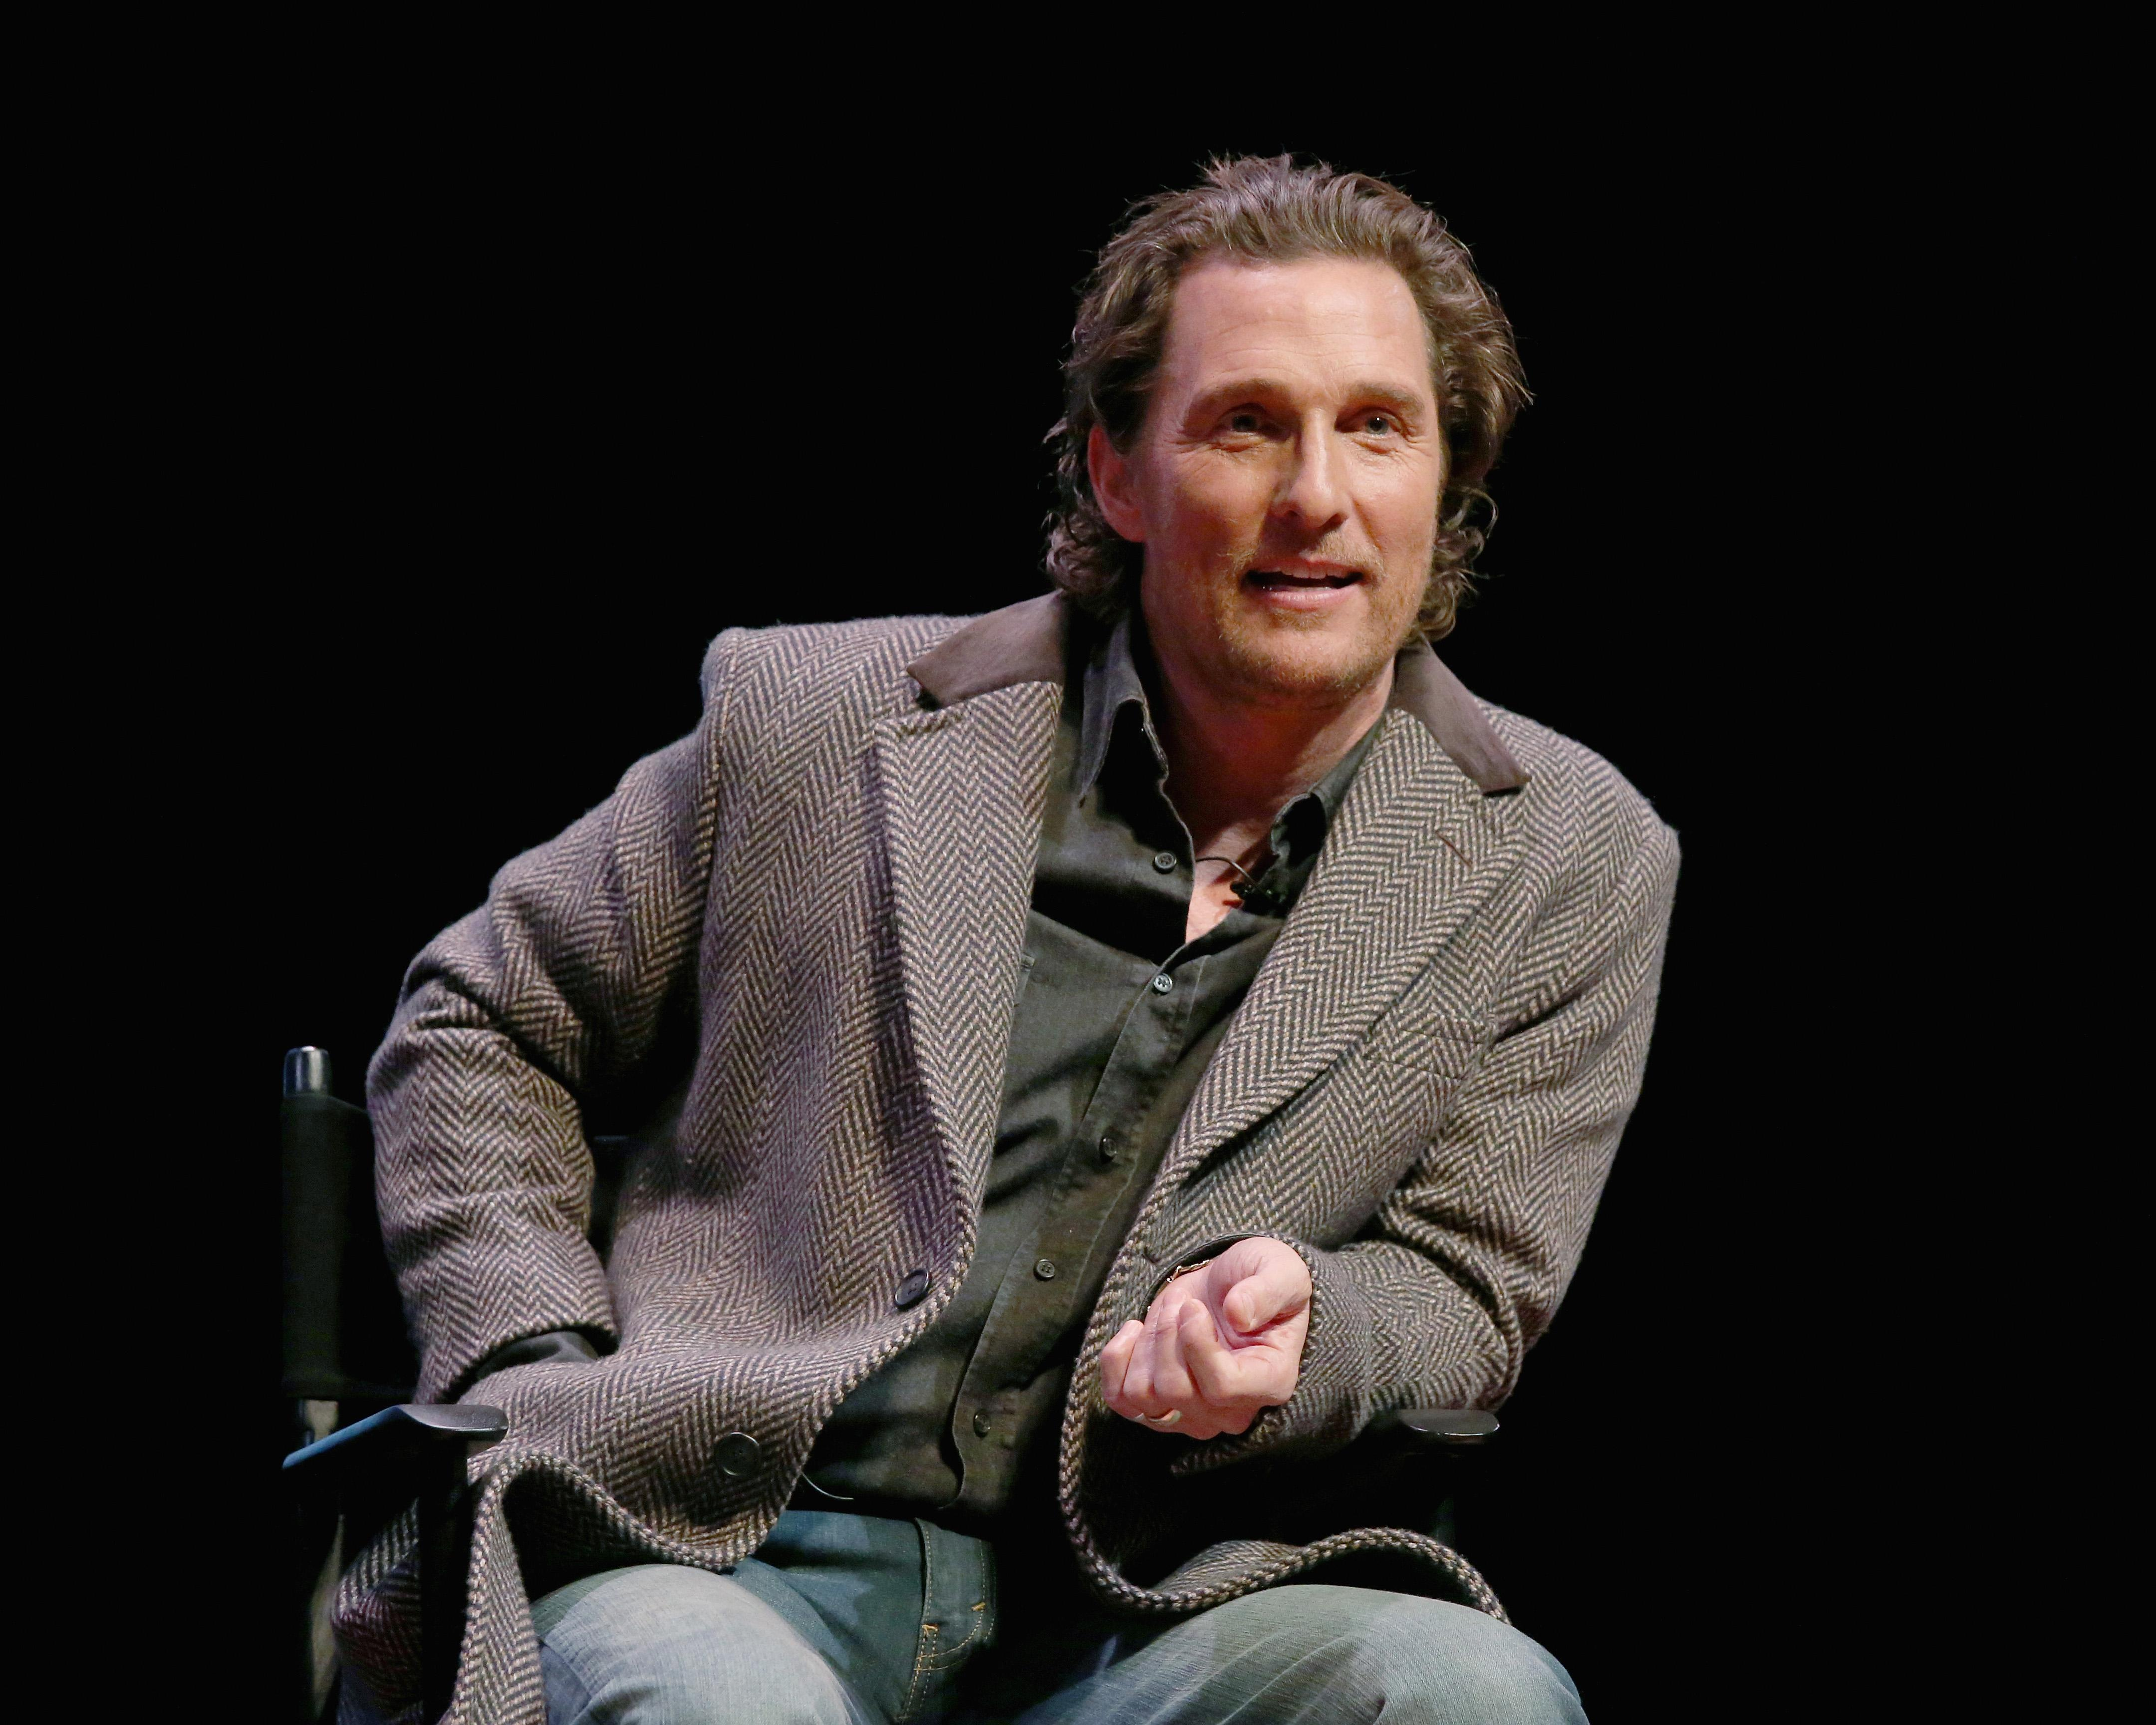 Matthew McConaughey shares inspiring 4th of July message: 'Wear the d*** mask'